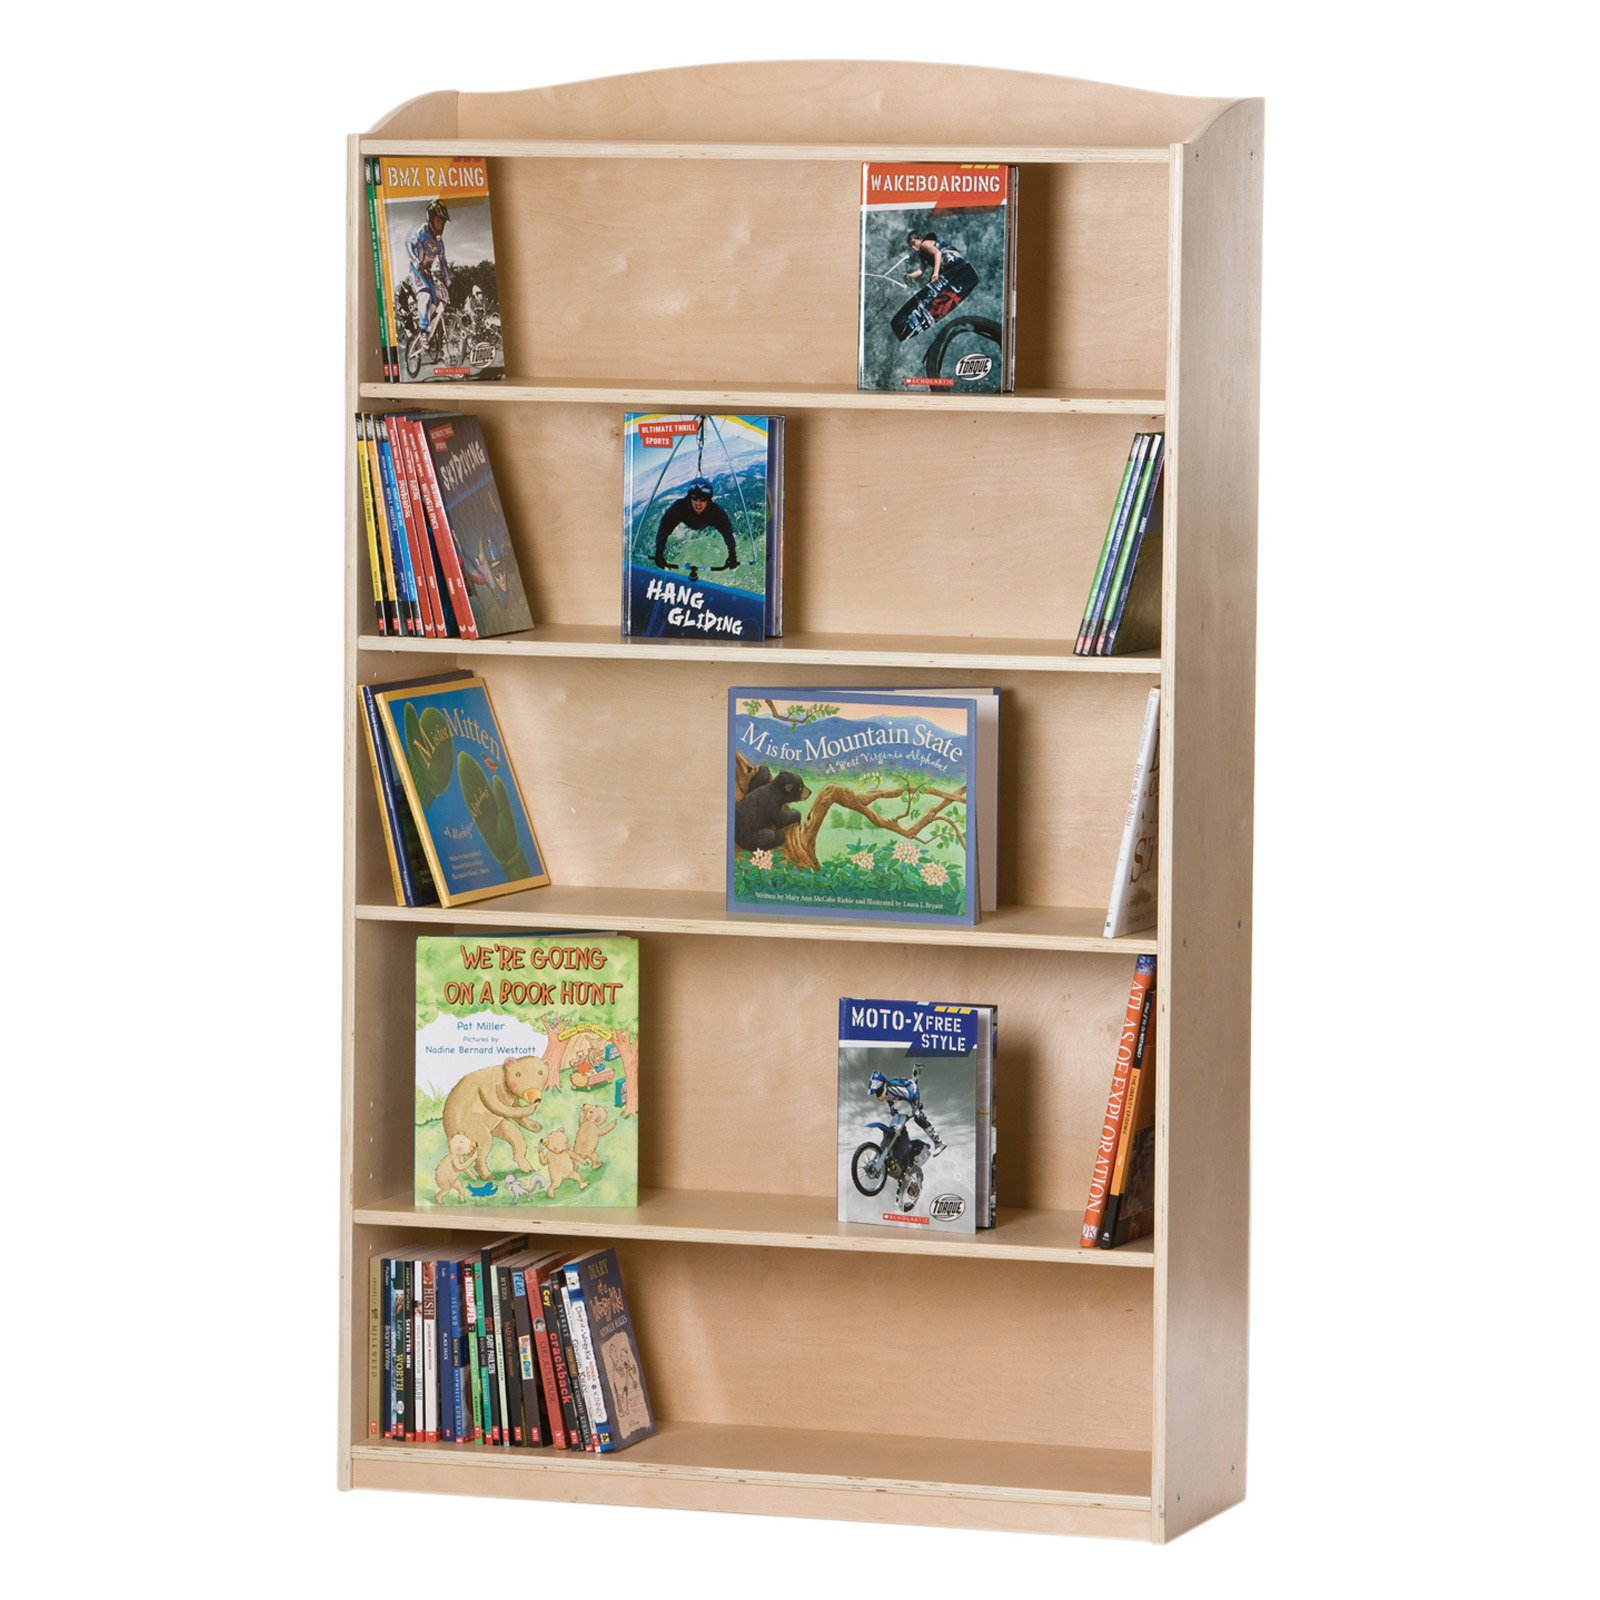 Guidecraft Kids Bookshelf, 5-Tier with Adjustable Shelves, Multiple Colors